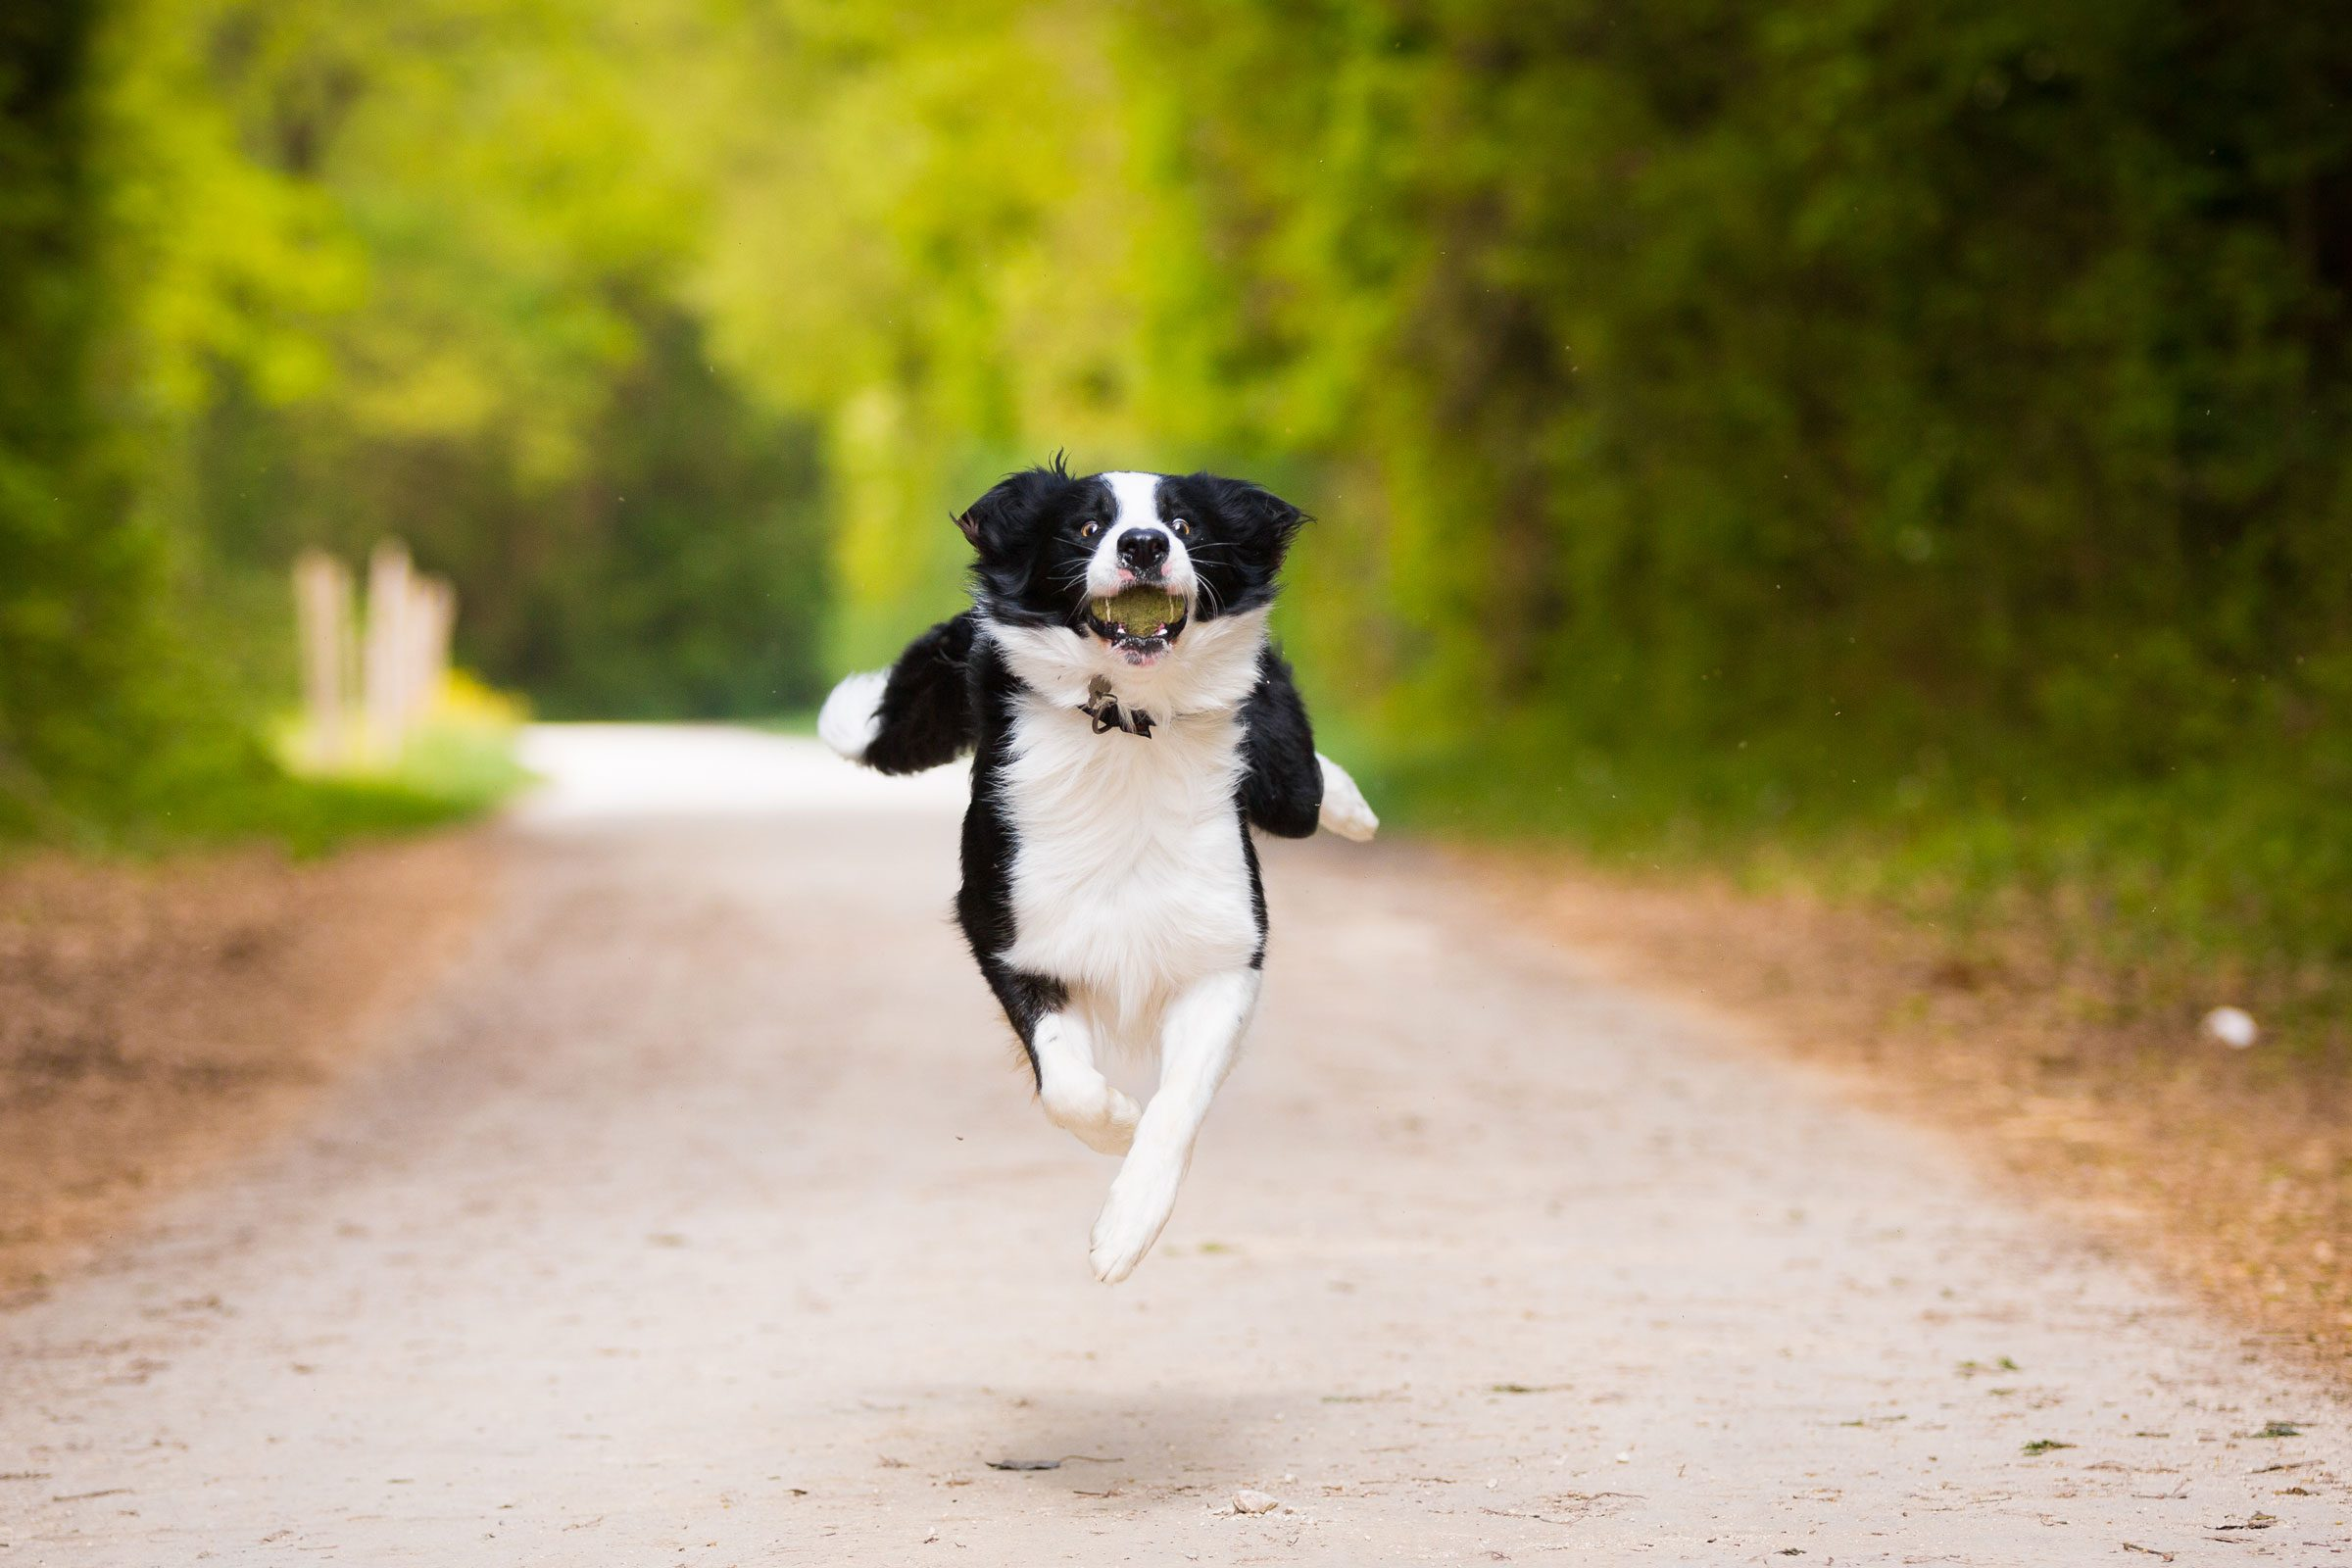 black and white dog running down a dirt road with a tennis ball in his mouth